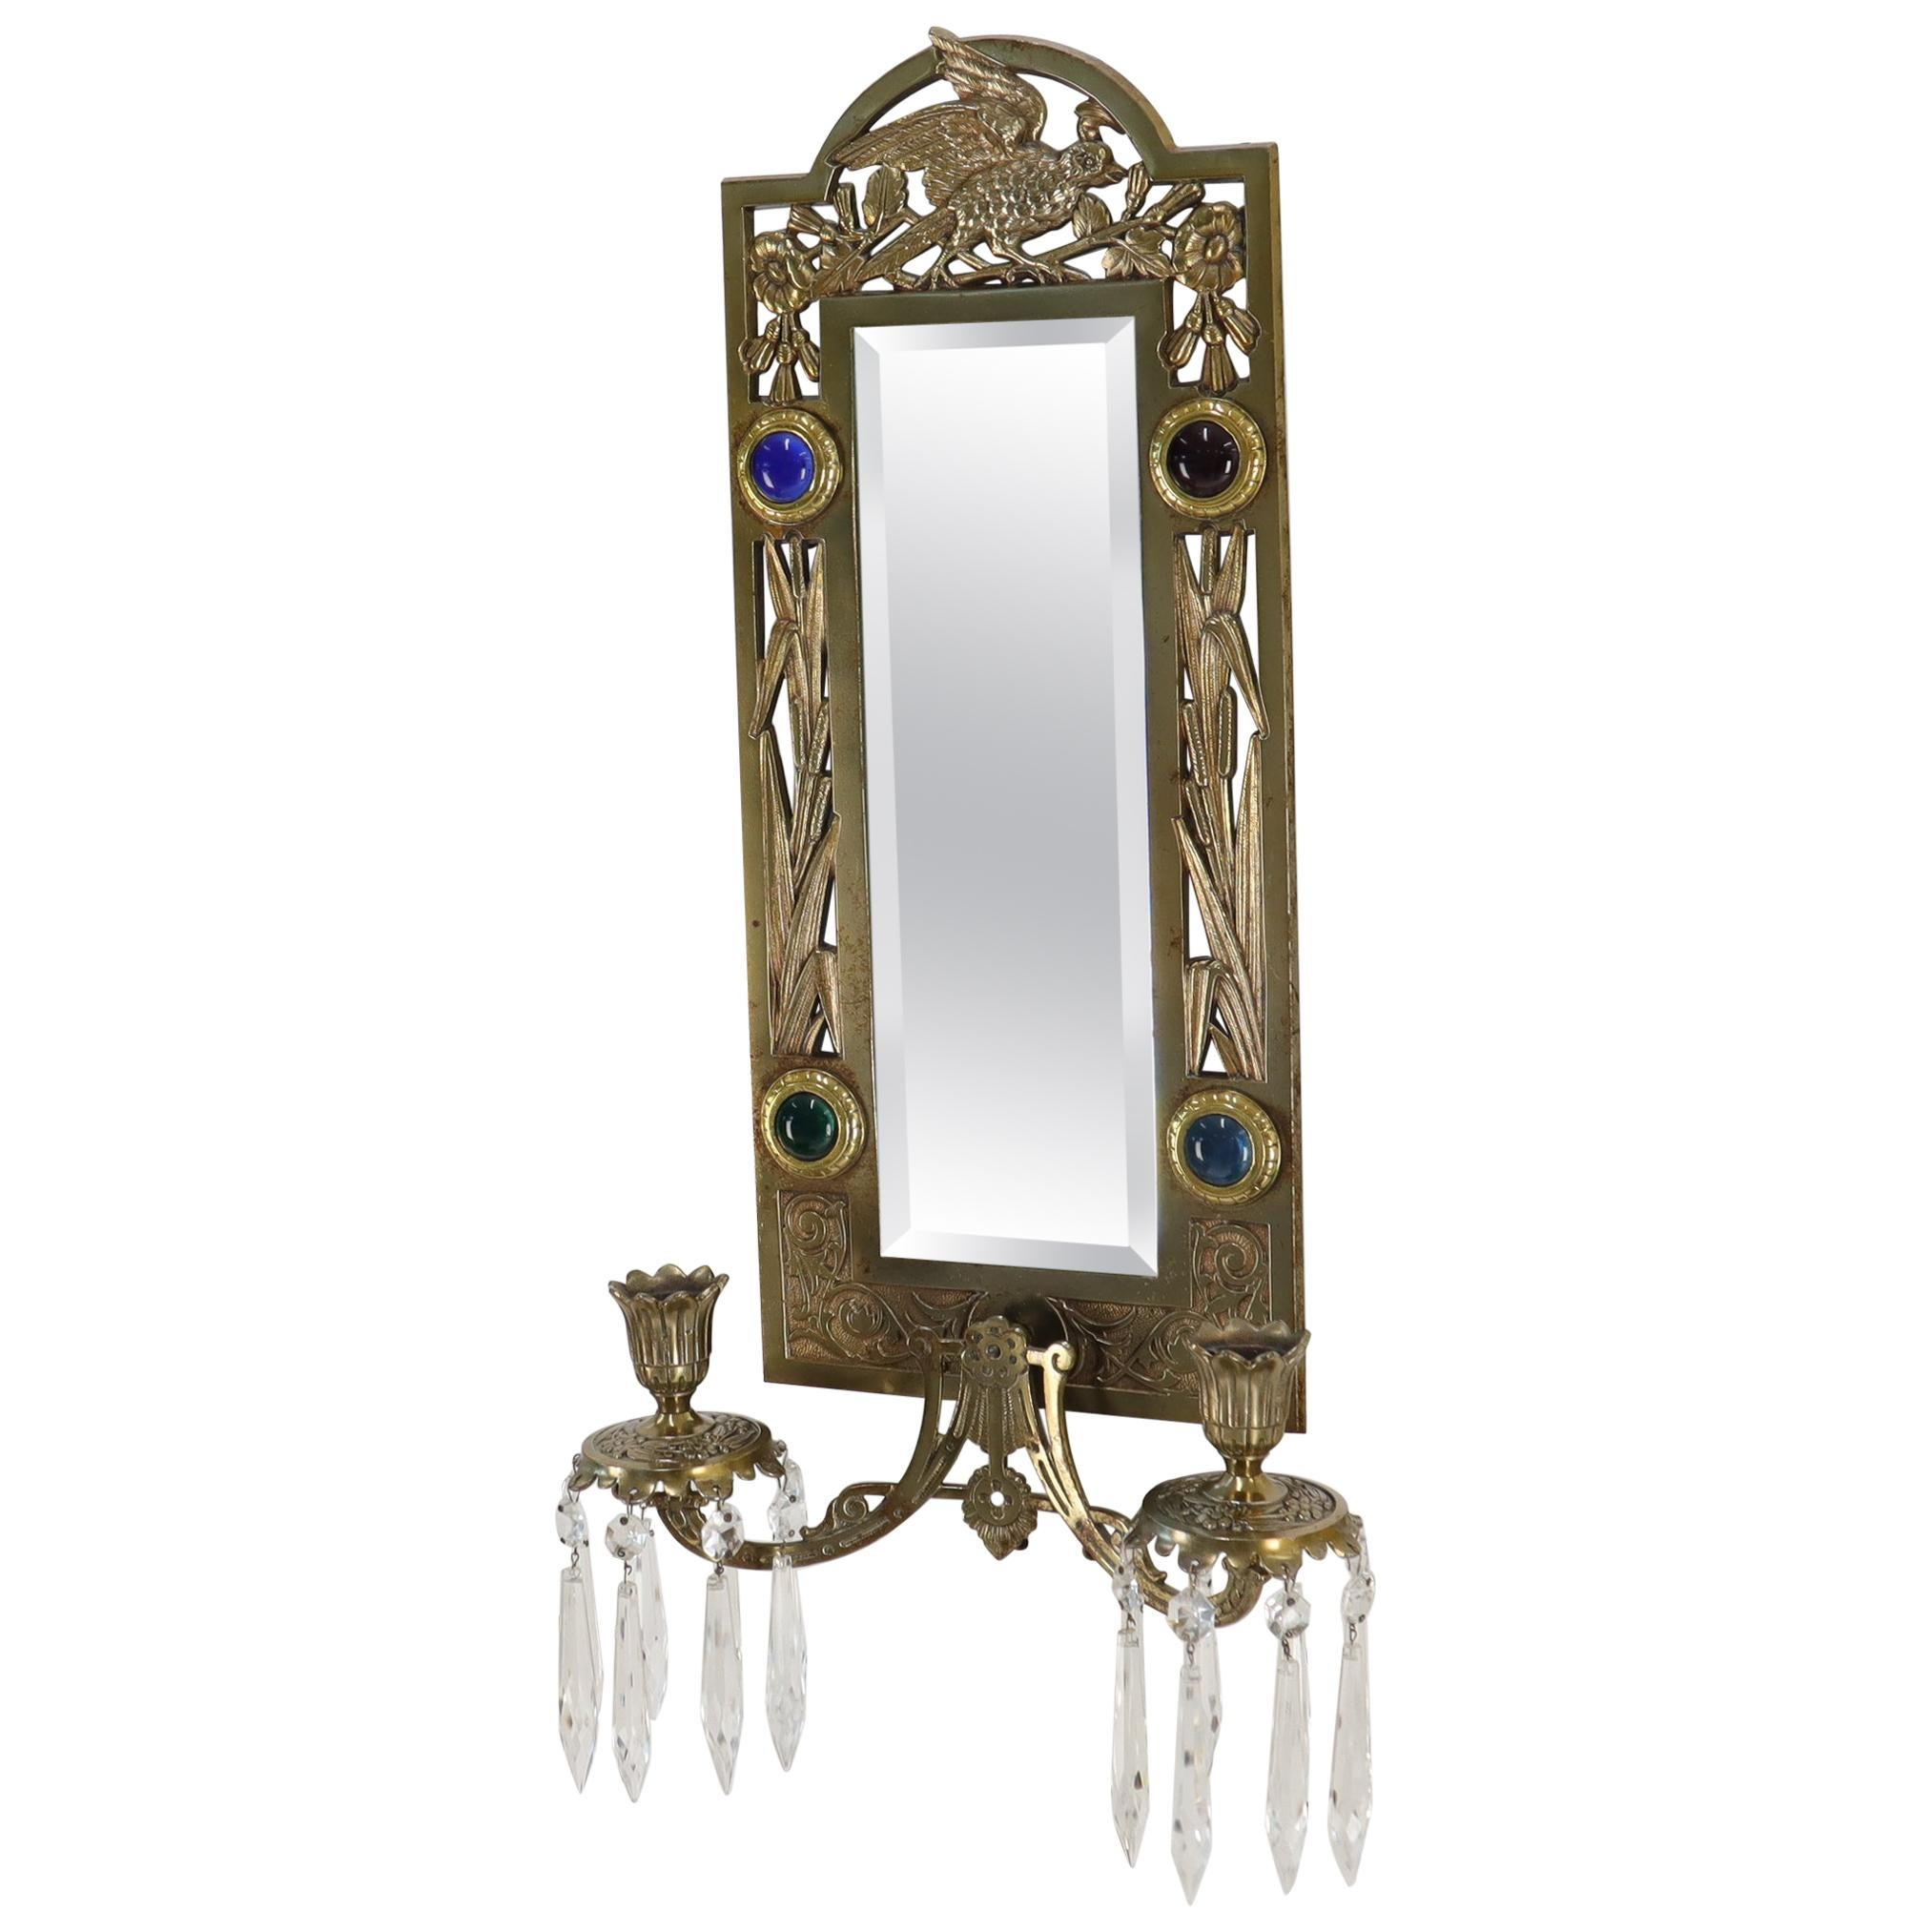 Antique Brass 2 Candle Mirror Jewel Decorated Wall Sconce 16 Prisms, circa 1875